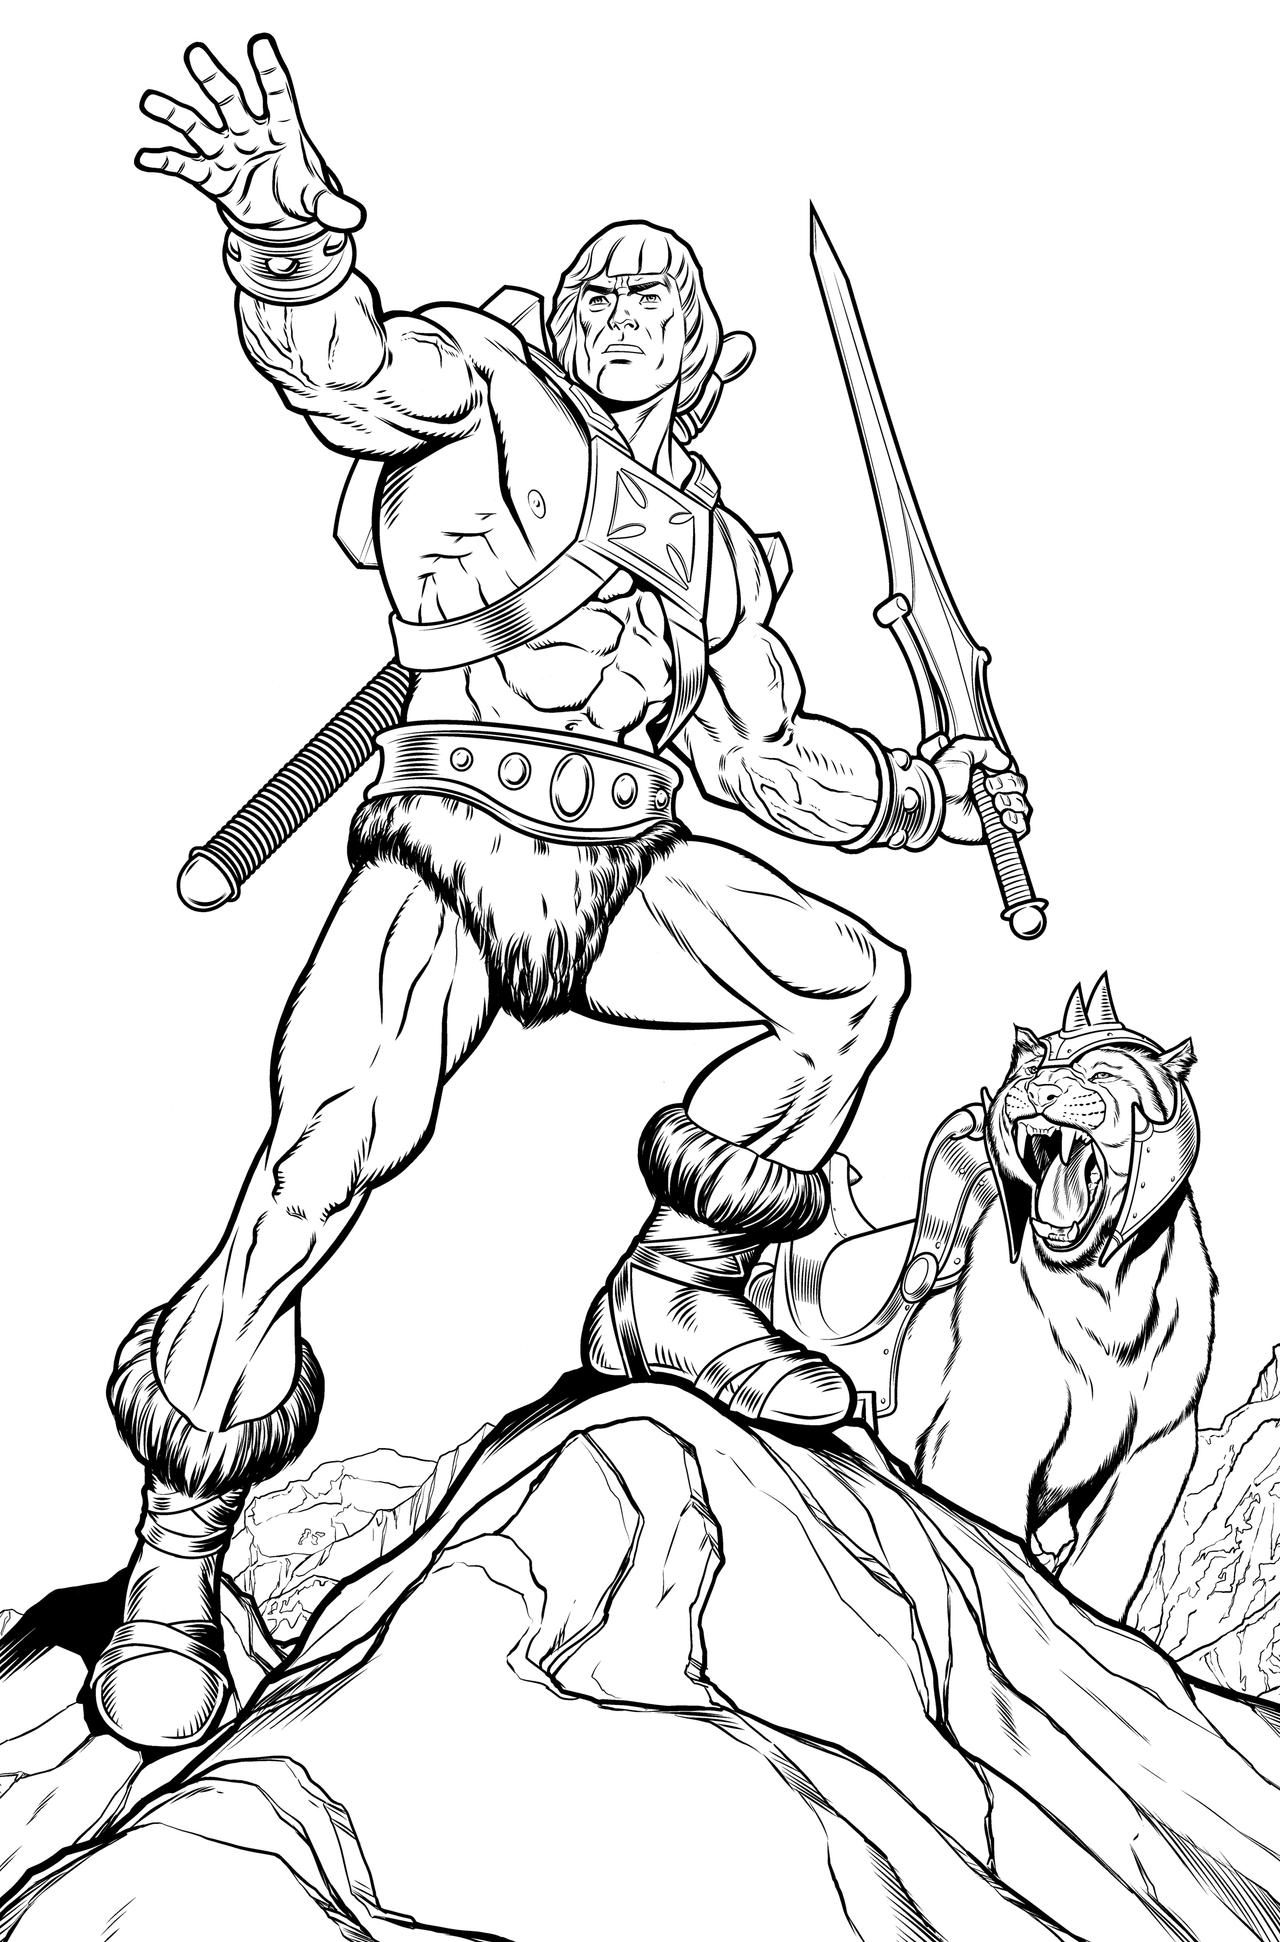 Wolfman coloring pages - digitalspace.info